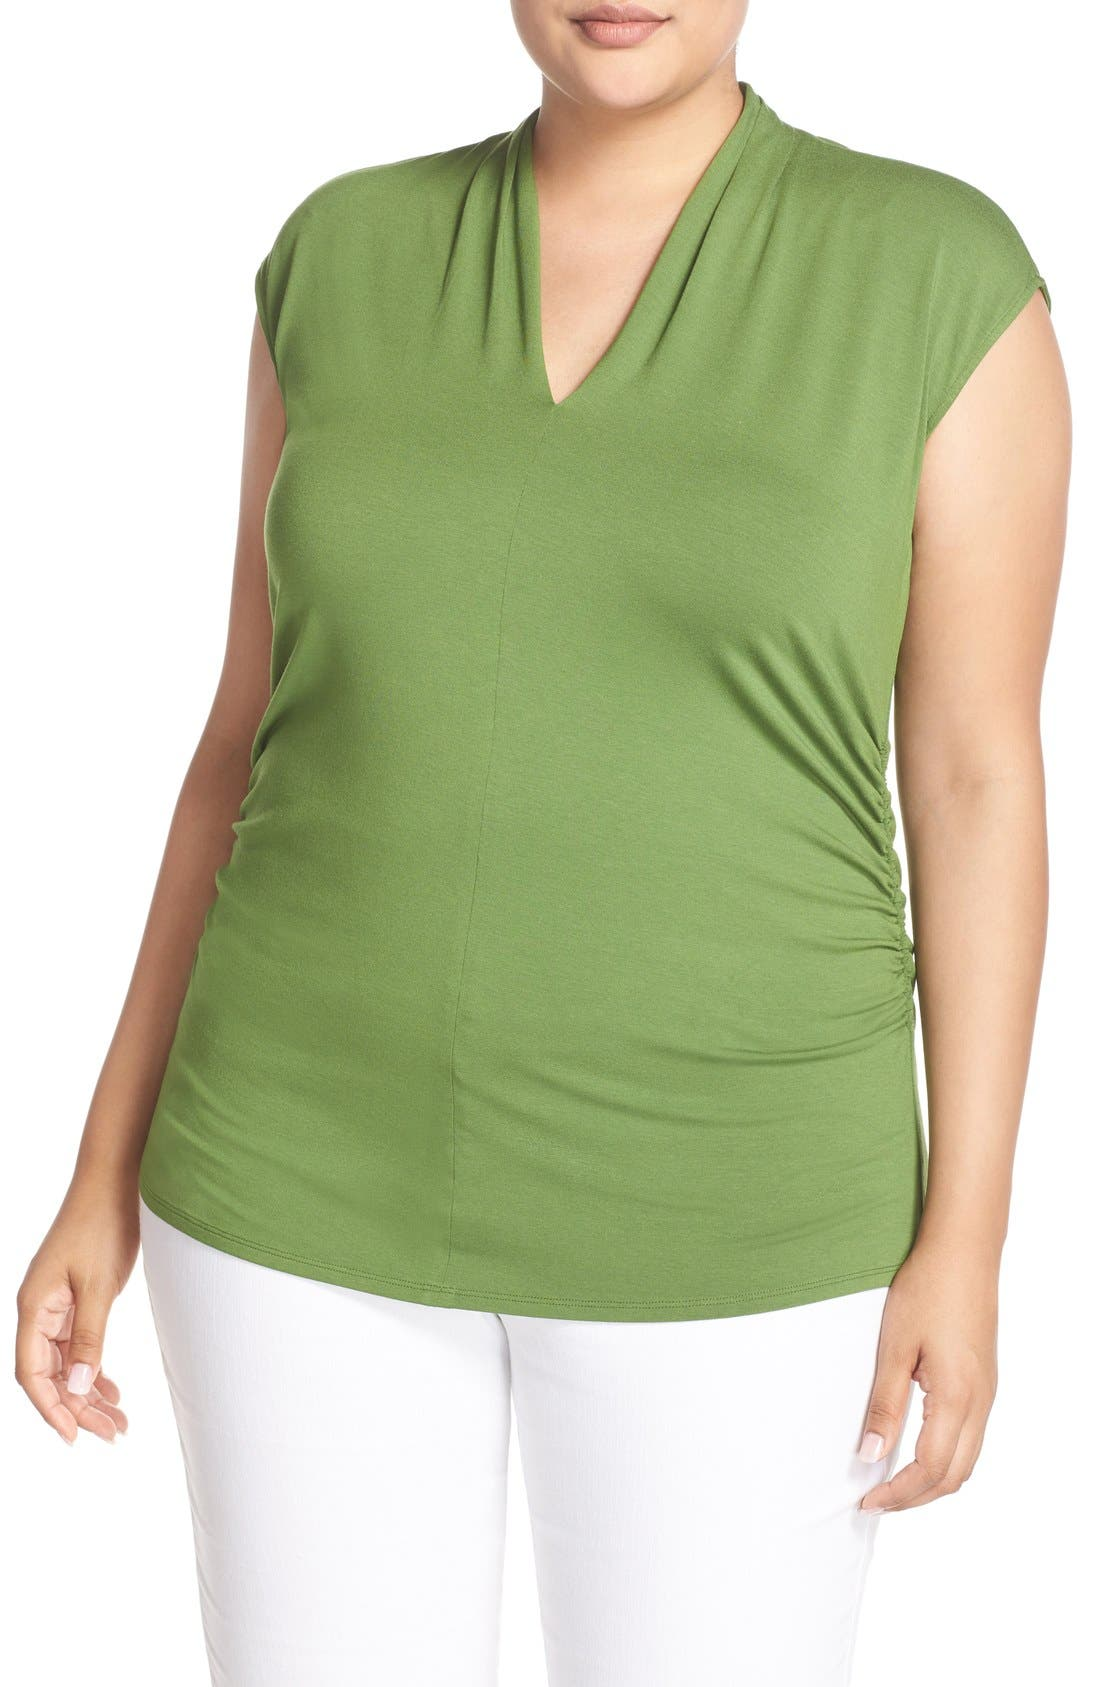 Alternate Image 1 Selected - Vince Camuto Pleat V-Neck Knit Top (Plus Size)